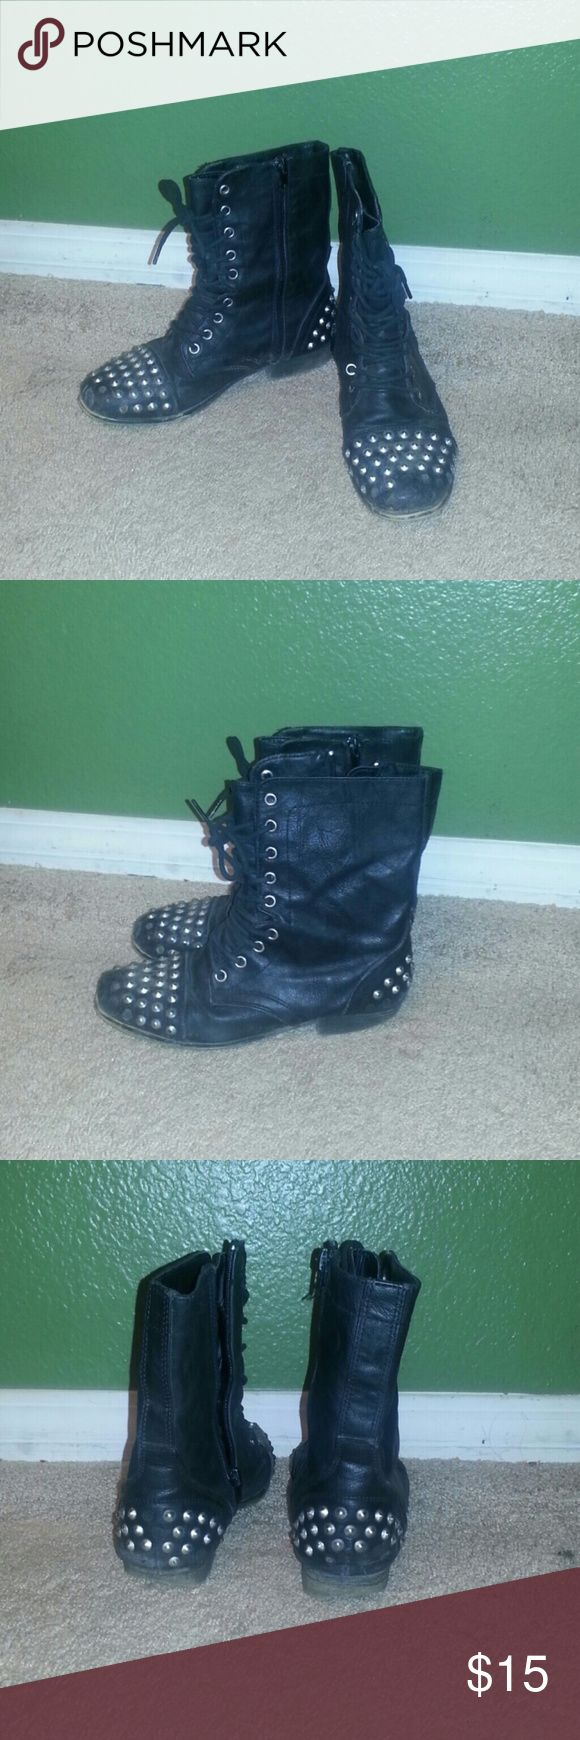 😊😍🤑 BLACK COOL STUDDED COMBAT BOOTS 😊😍🤑 These combat boots are black with silver studs on them look so cool , Some studs are missing maybe like 5 or 6 the rest of the shoe is fine . Madden Girl Shoes Combat & Moto Boots